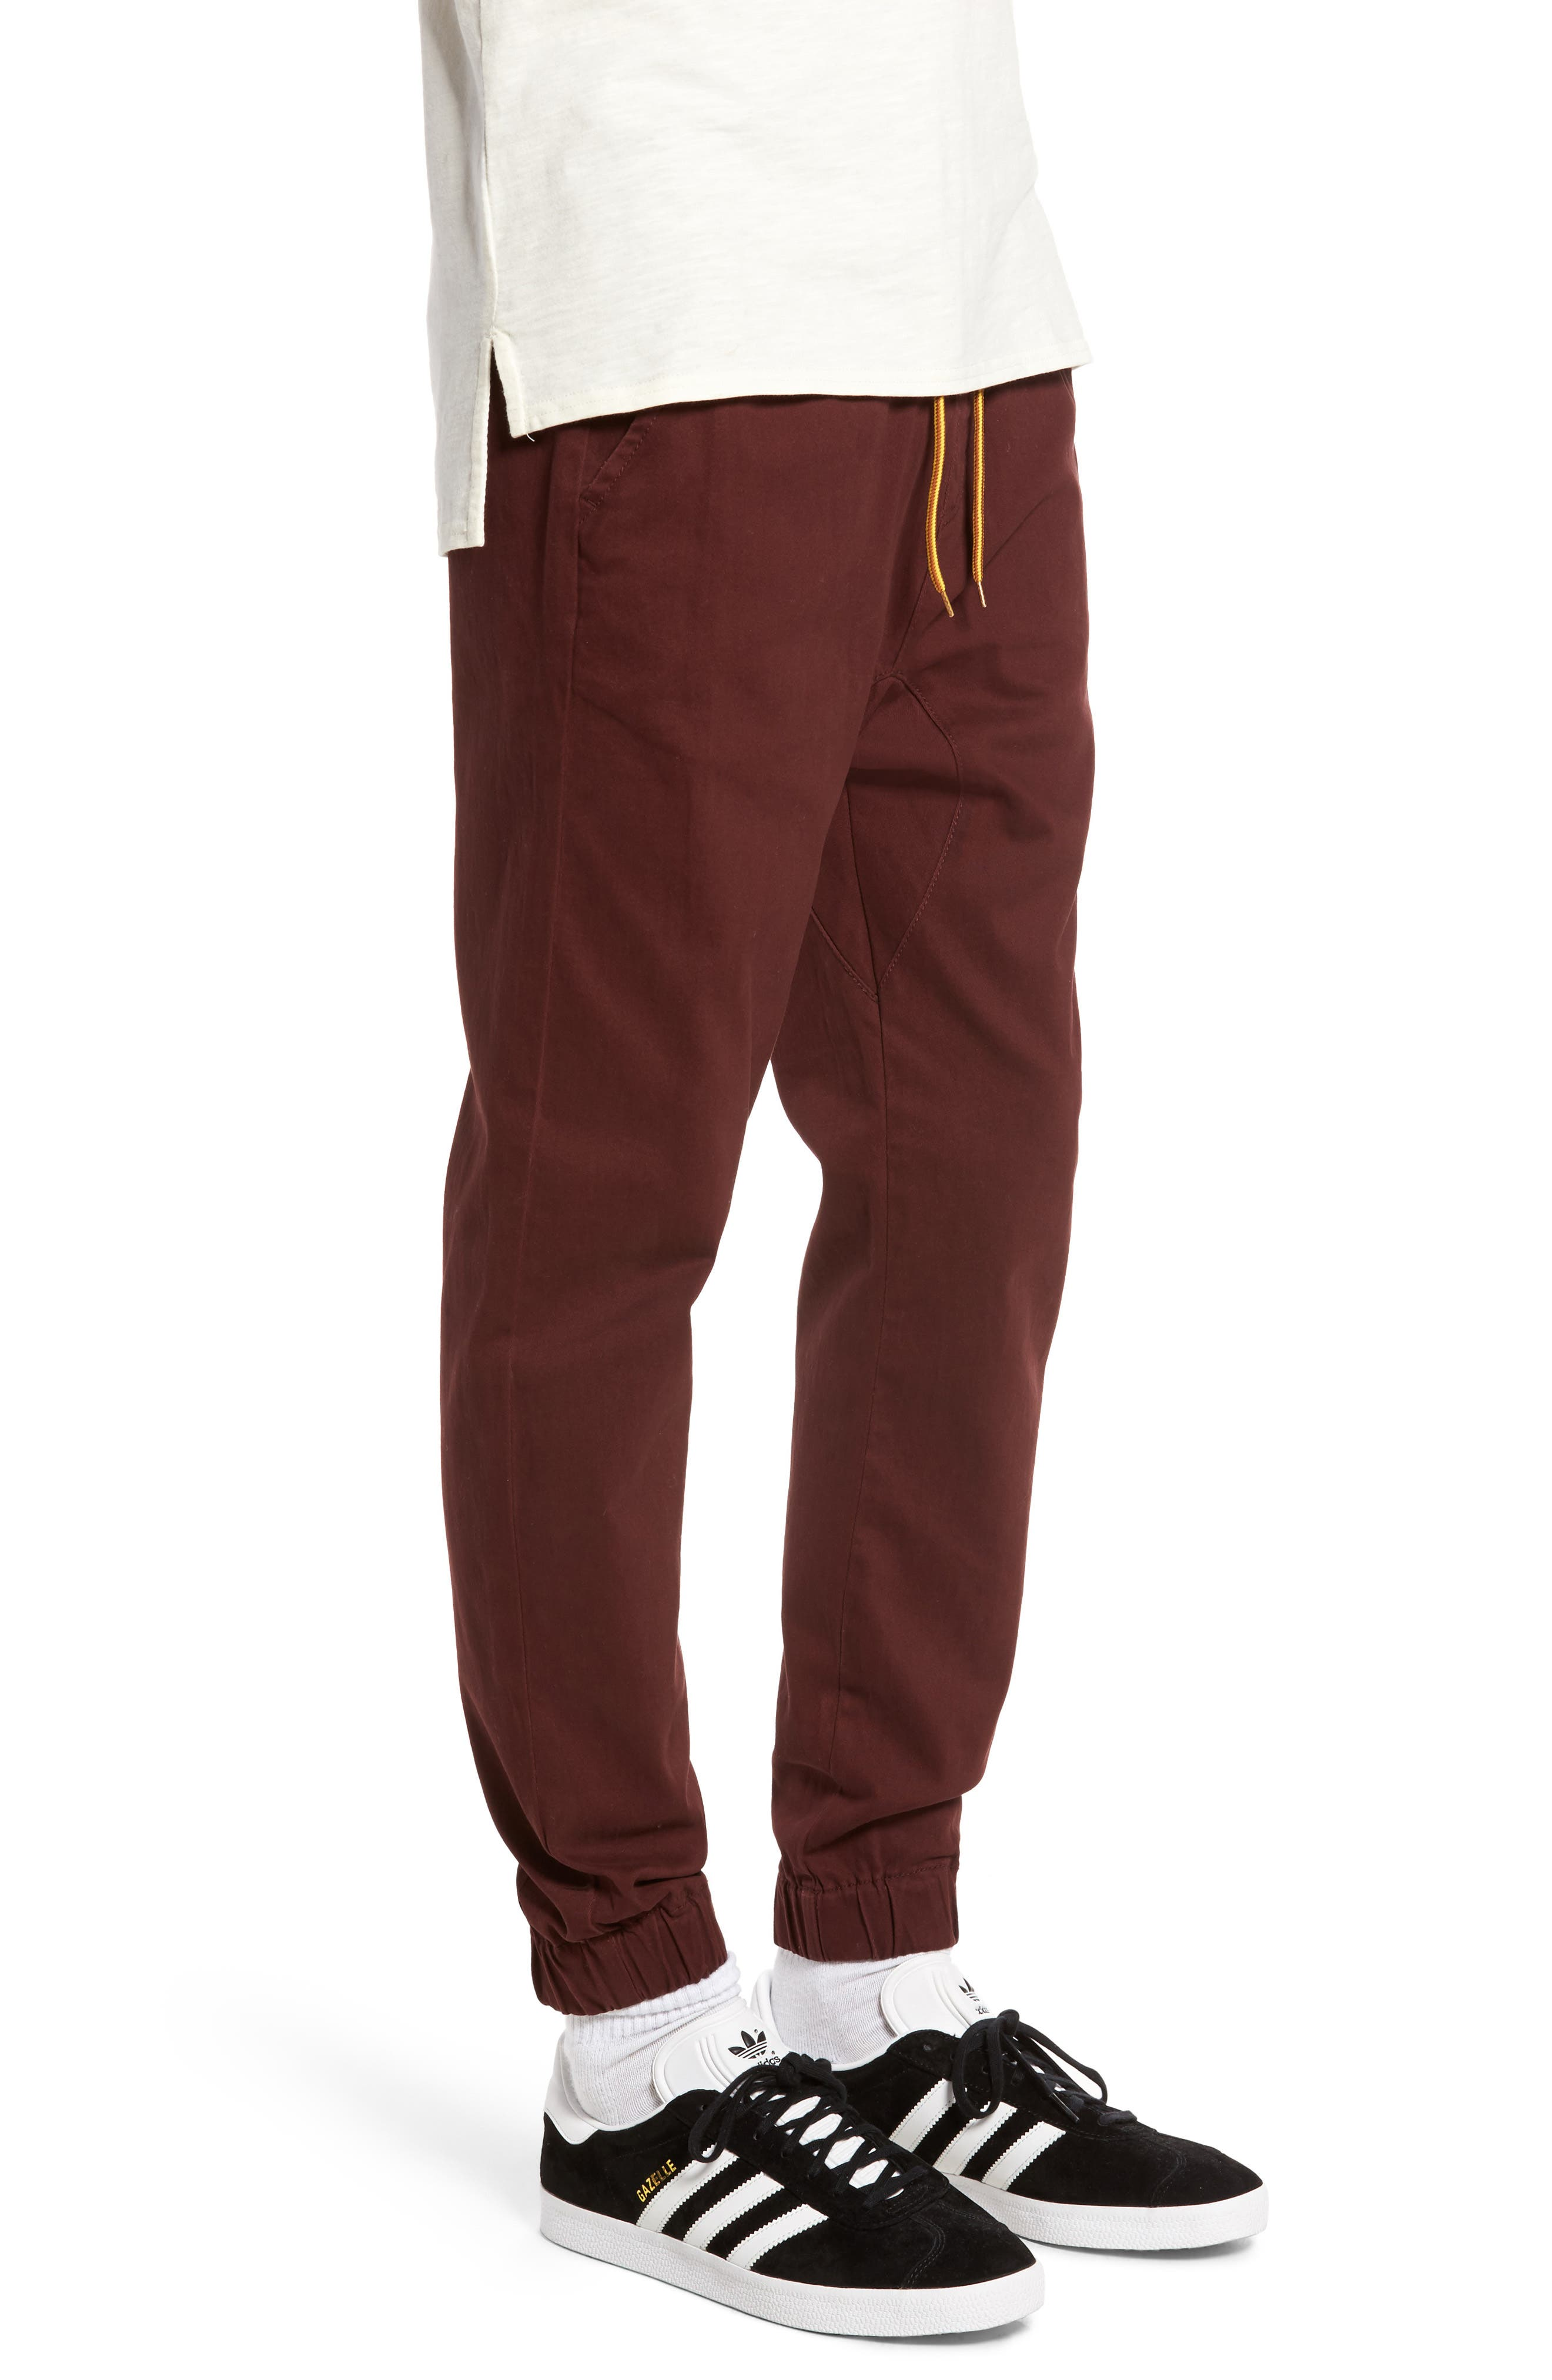 Weekend Jogger Pants,                             Alternate thumbnail 23, color,